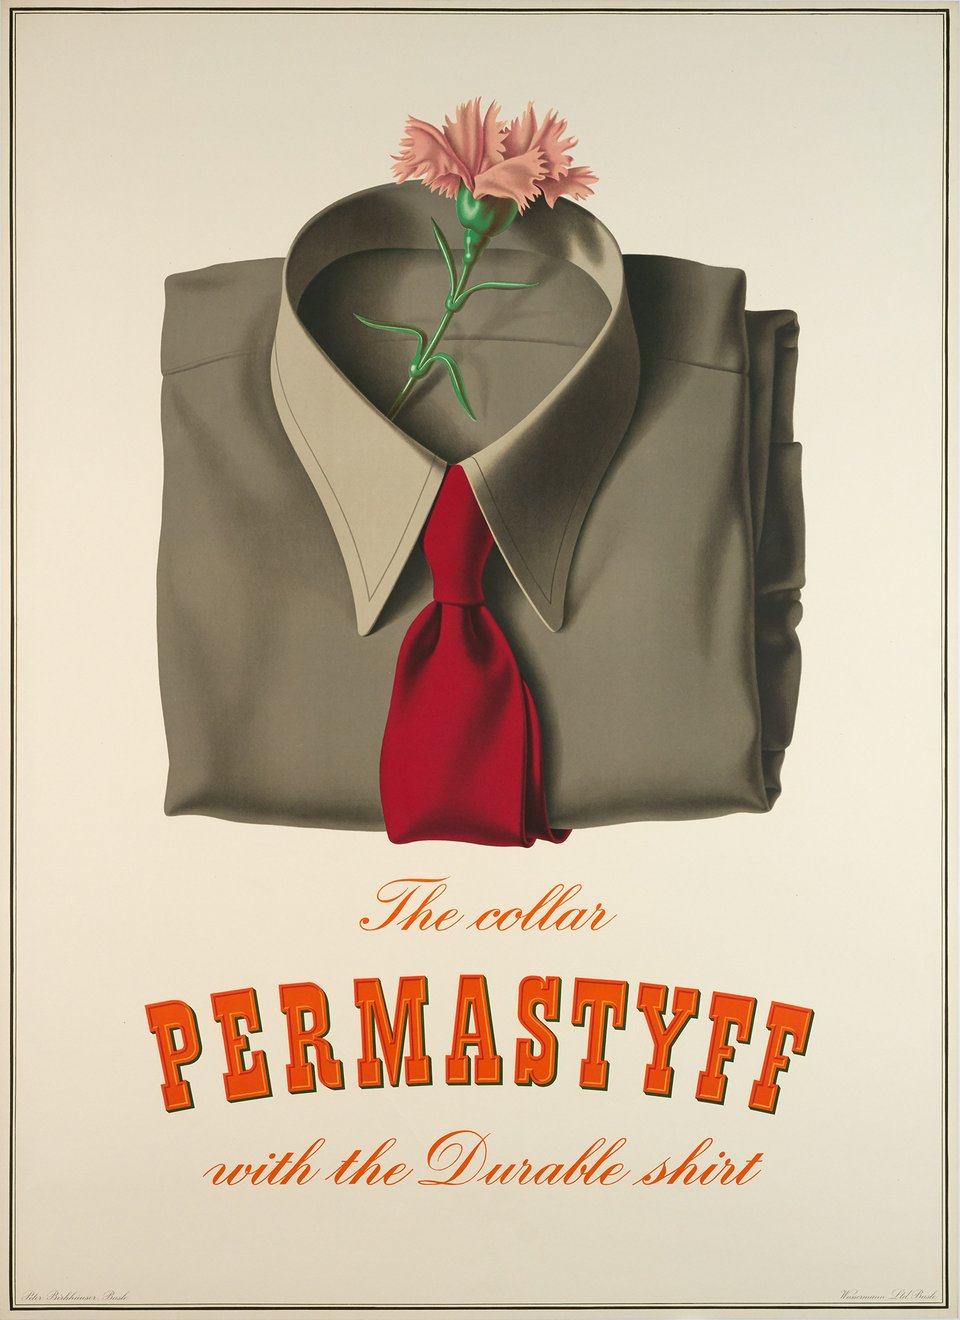 The collar Permastyff with the durable shirt – Vintage poster – Peter BIRKHAUSER – 1943